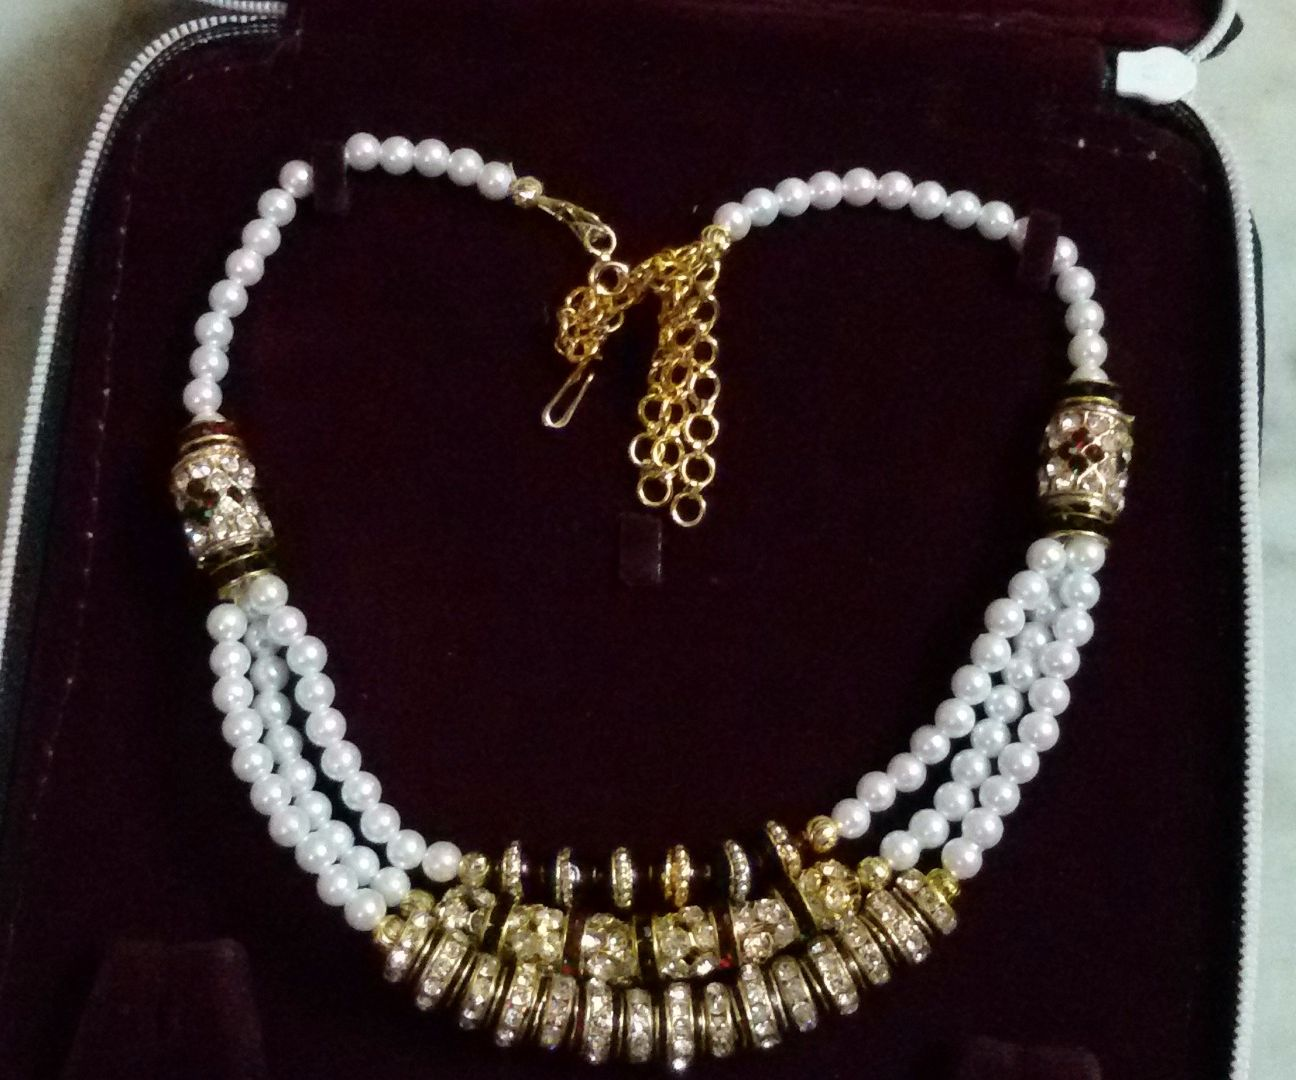 Bead Necklace!!!